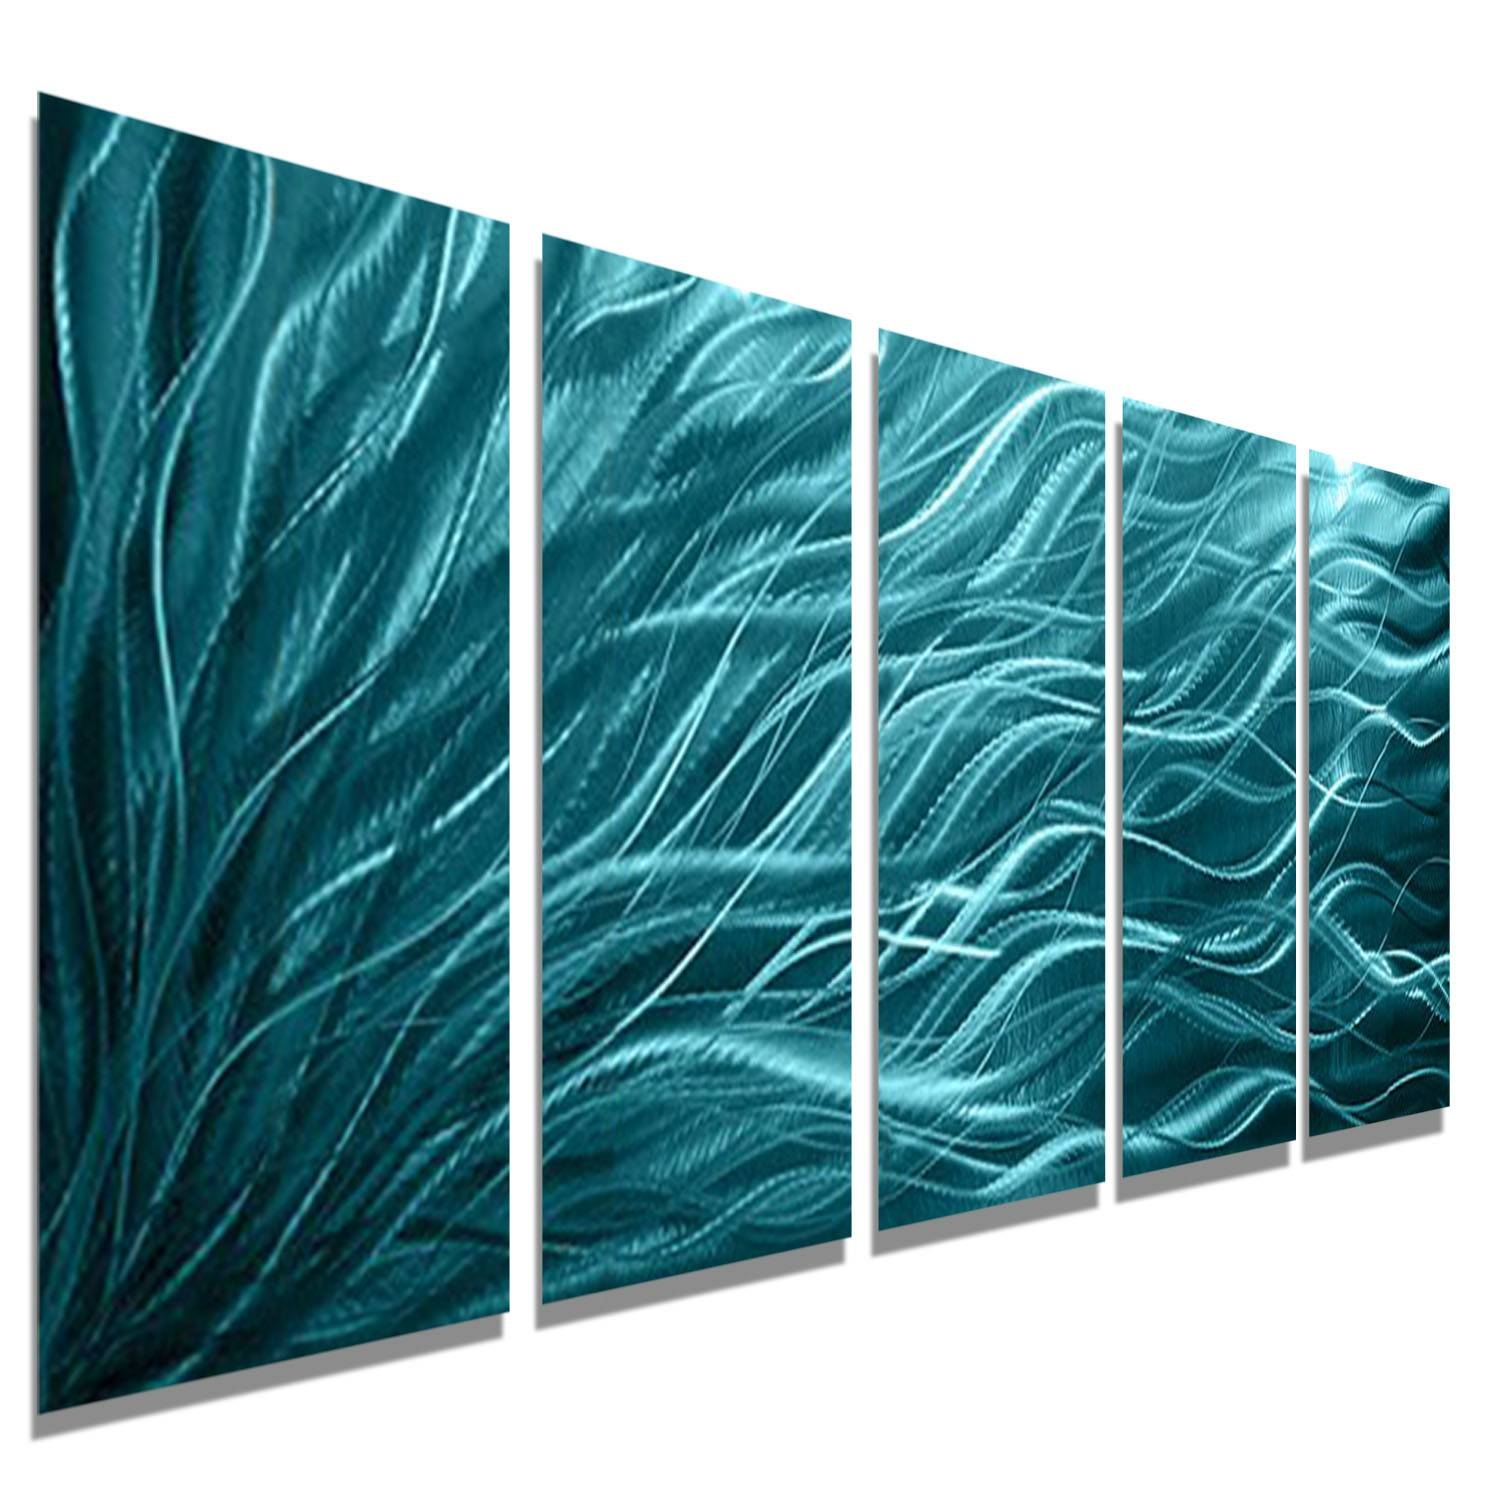 Aqua Sea Grass – Aqua Blue Metal Wall Art – 5 Panel Wall Décor Throughout Best And Newest Blue And Green Wall Art (View 3 of 20)